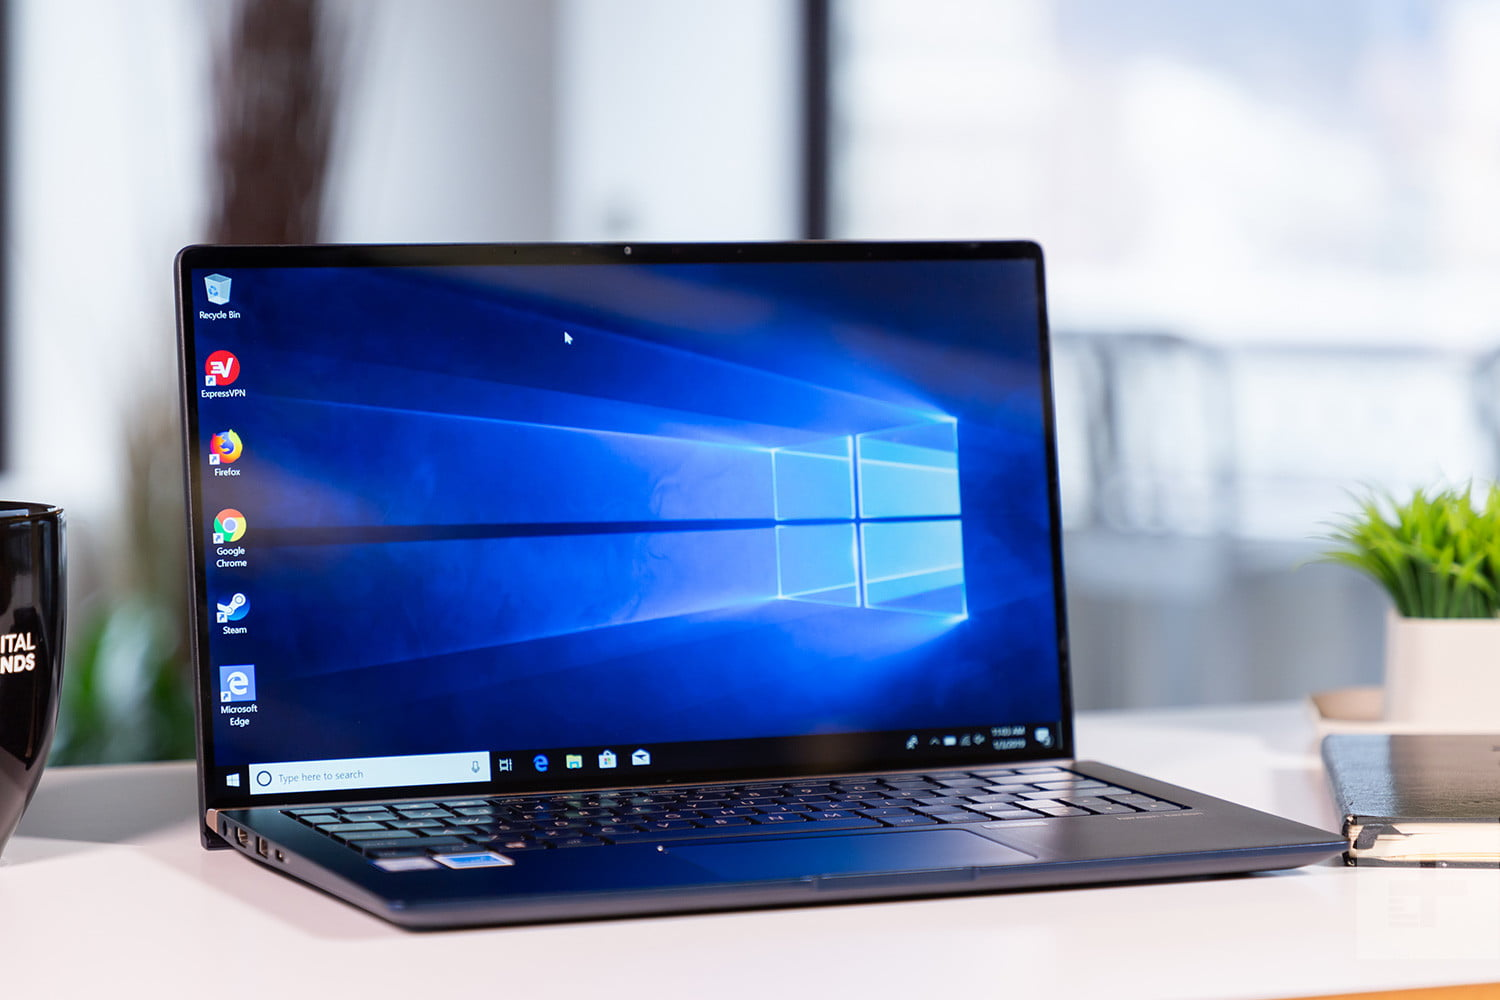 Best Laptop for Students And Gamers